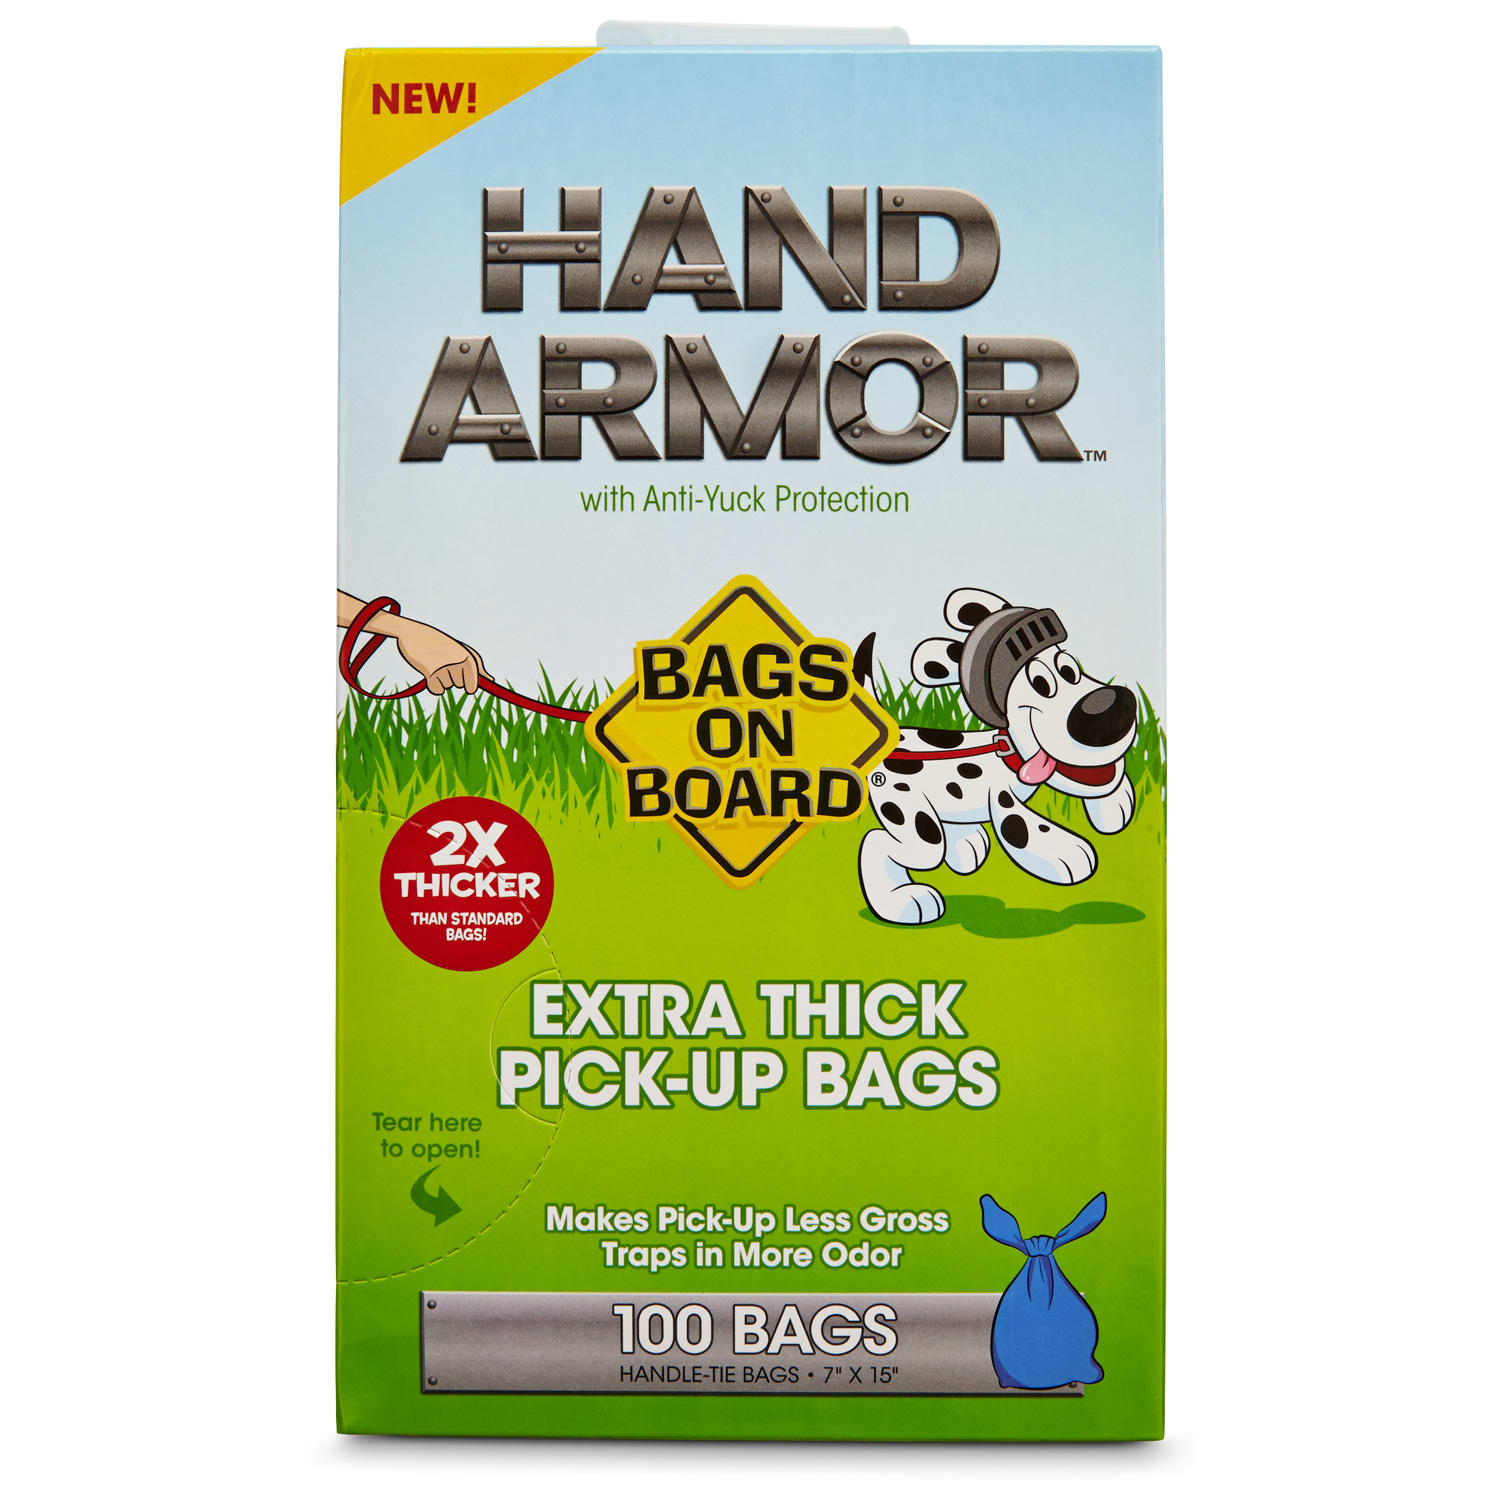 Bags on Board Hand Armor Extra Thick Dog Waste Pick-Up Bags, 100 count, 7 IN